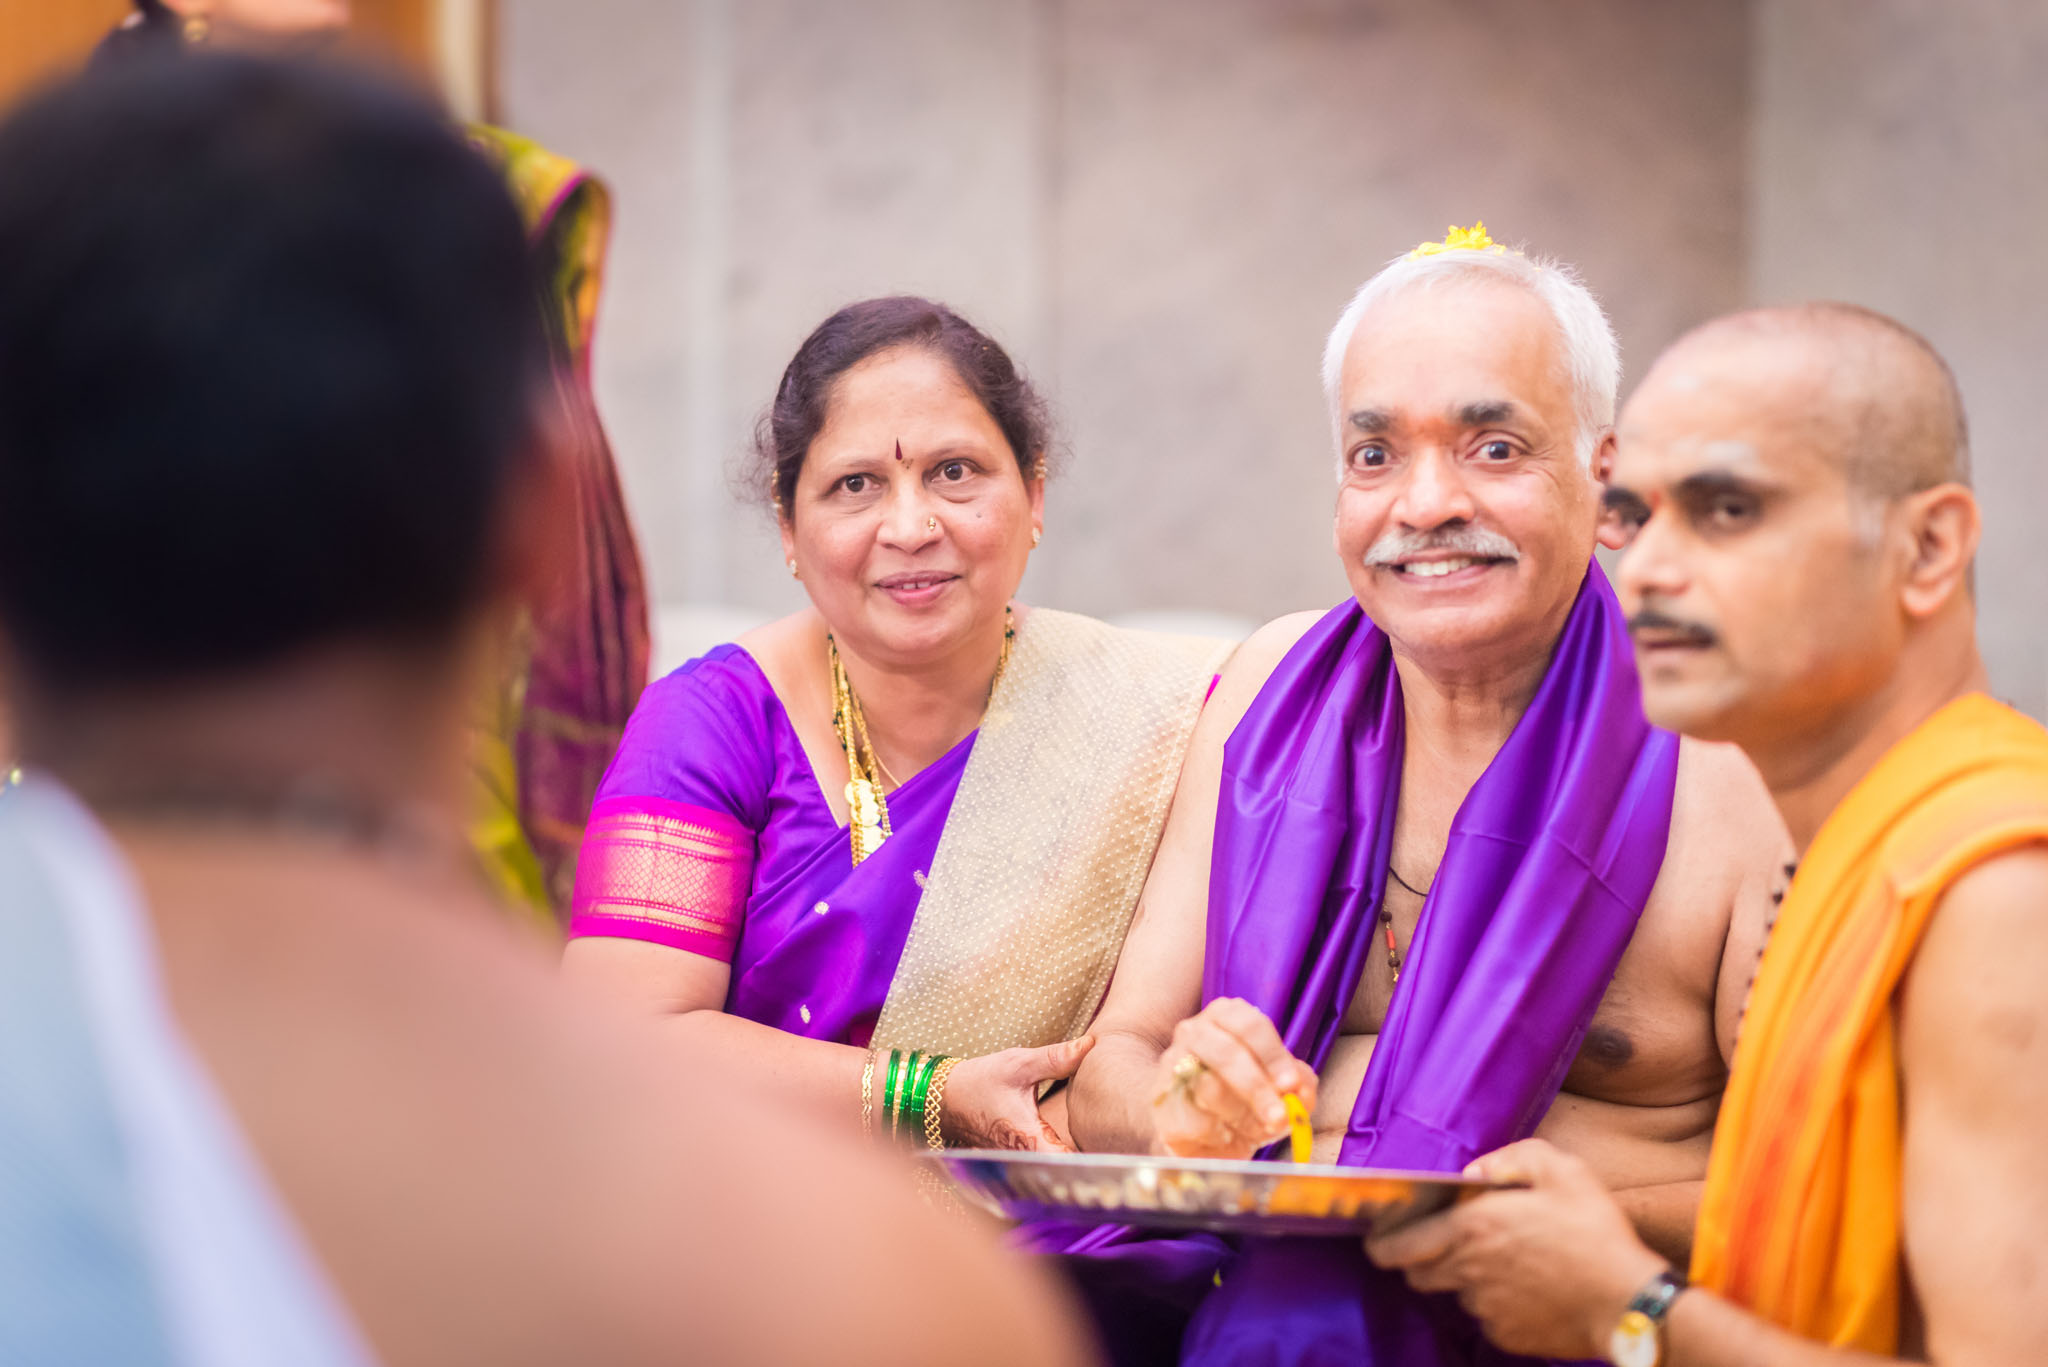 WhatKnot-Candid-Wedding-Photography-Mumbai-Bangalore-68